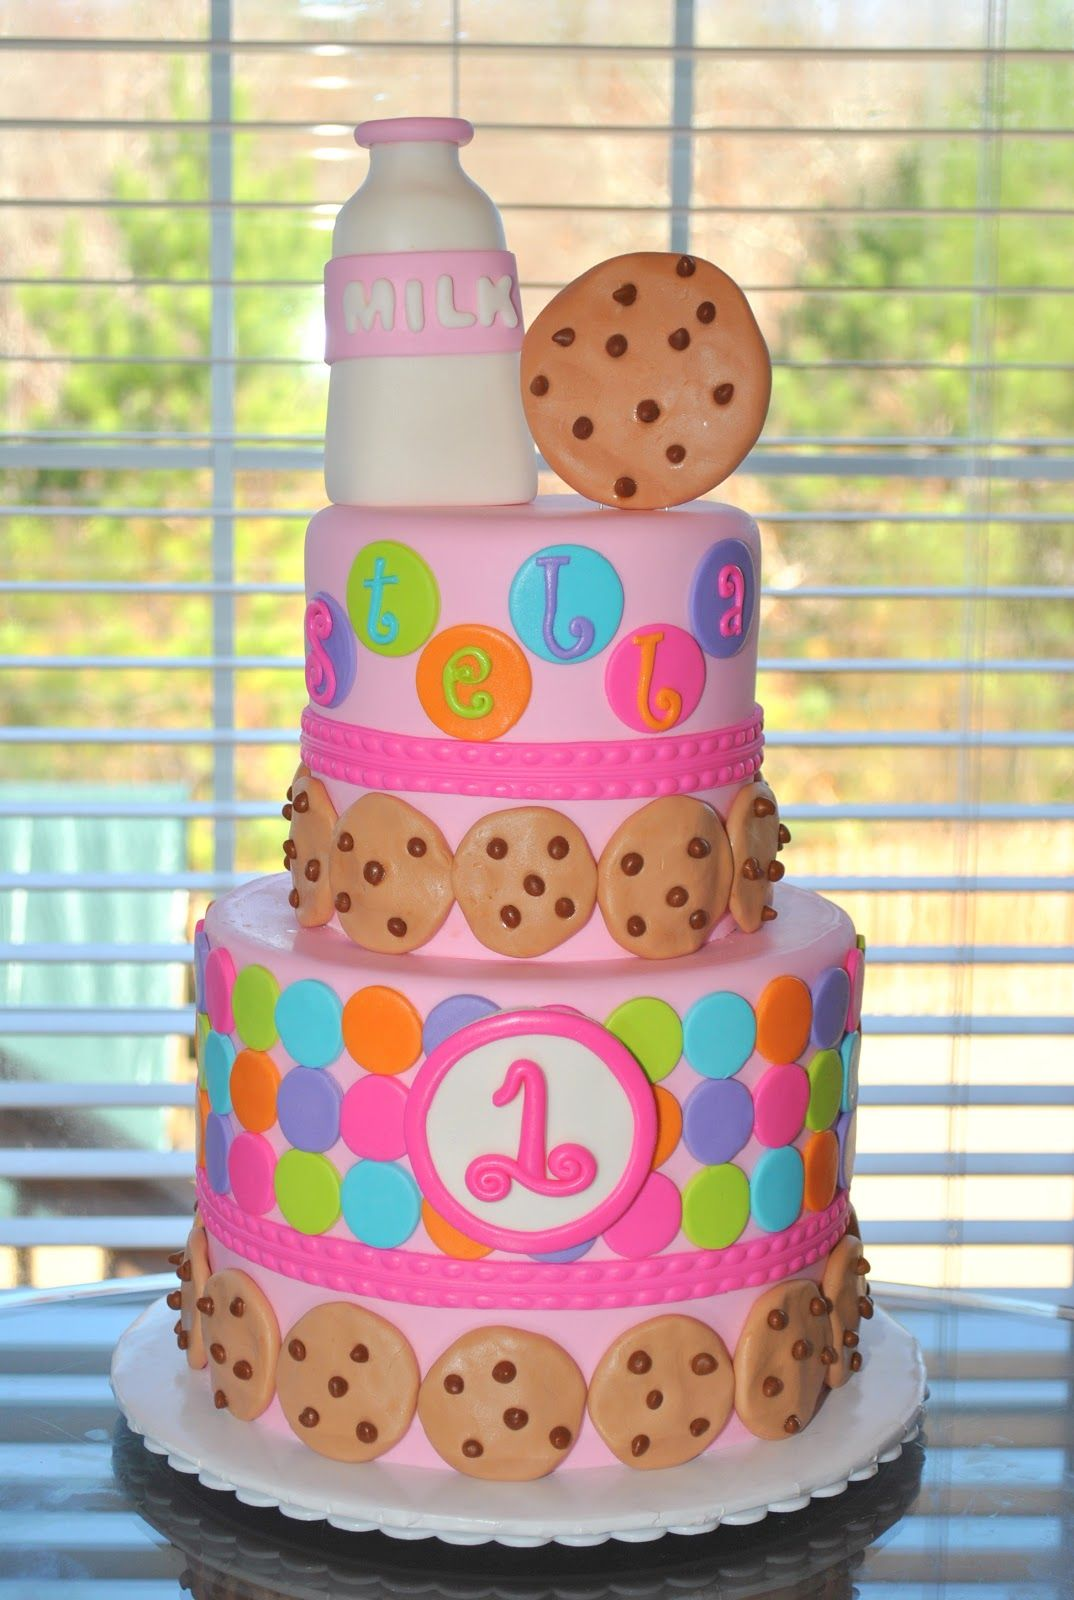 11 Year Old Birthday Cakes For Girls